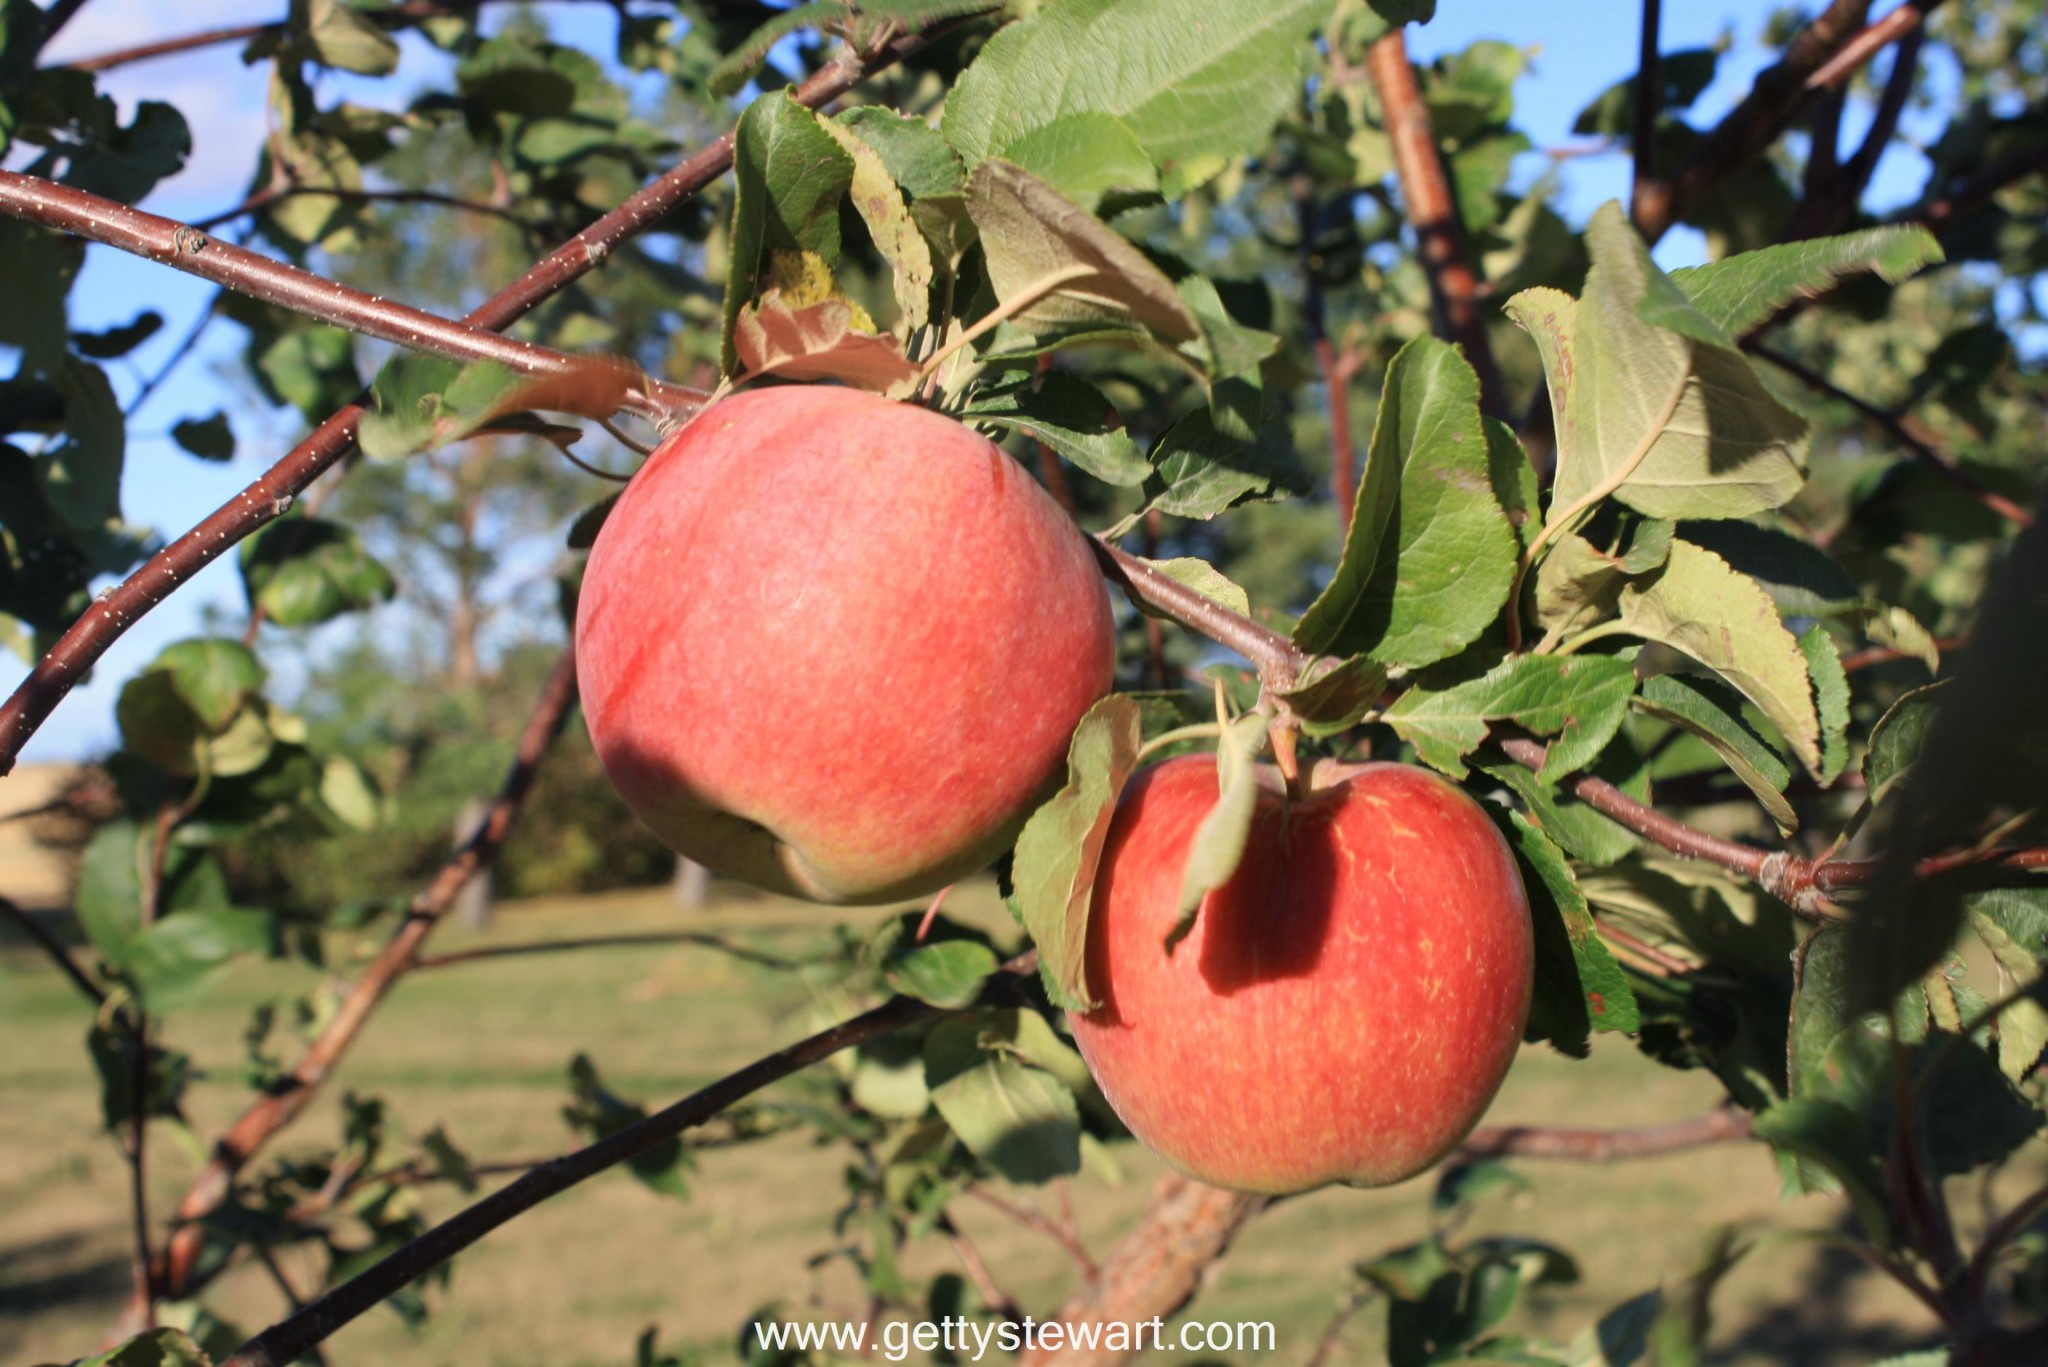 How to tell when are apples ripe and ready to pick?